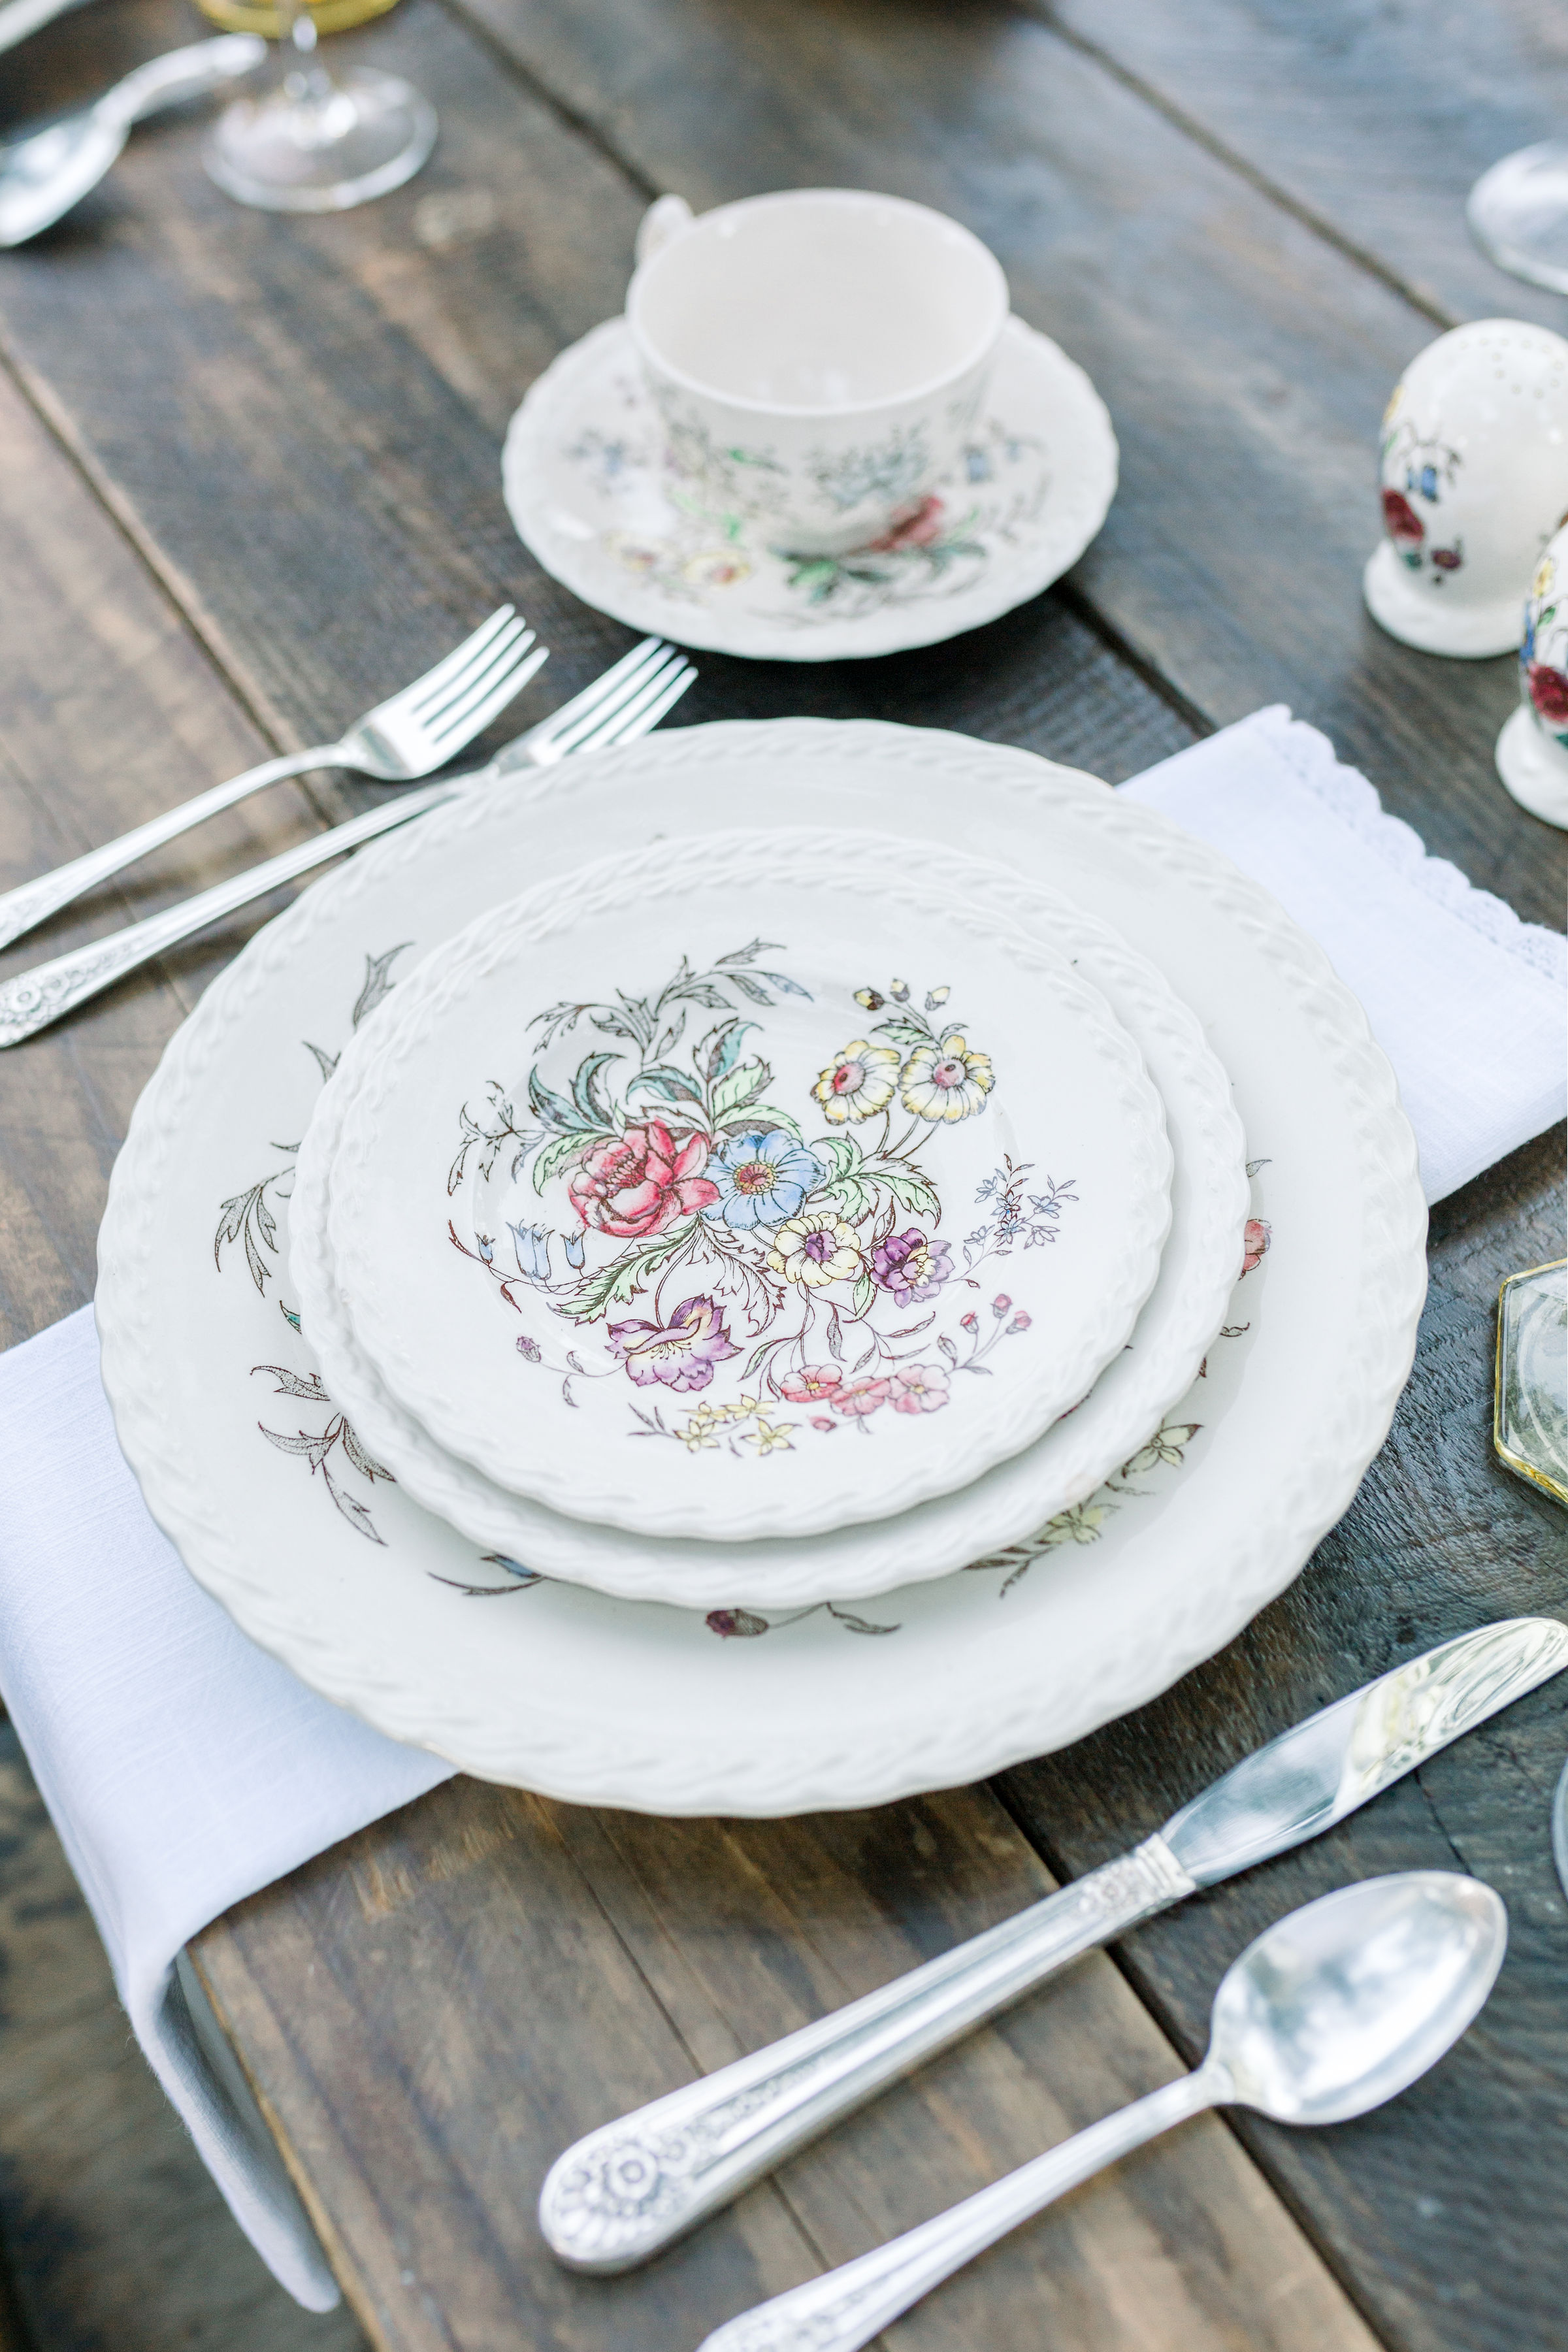 Johnson Brothers China and Staffordshire China were mixed. They had similar hues and went together perfectly.